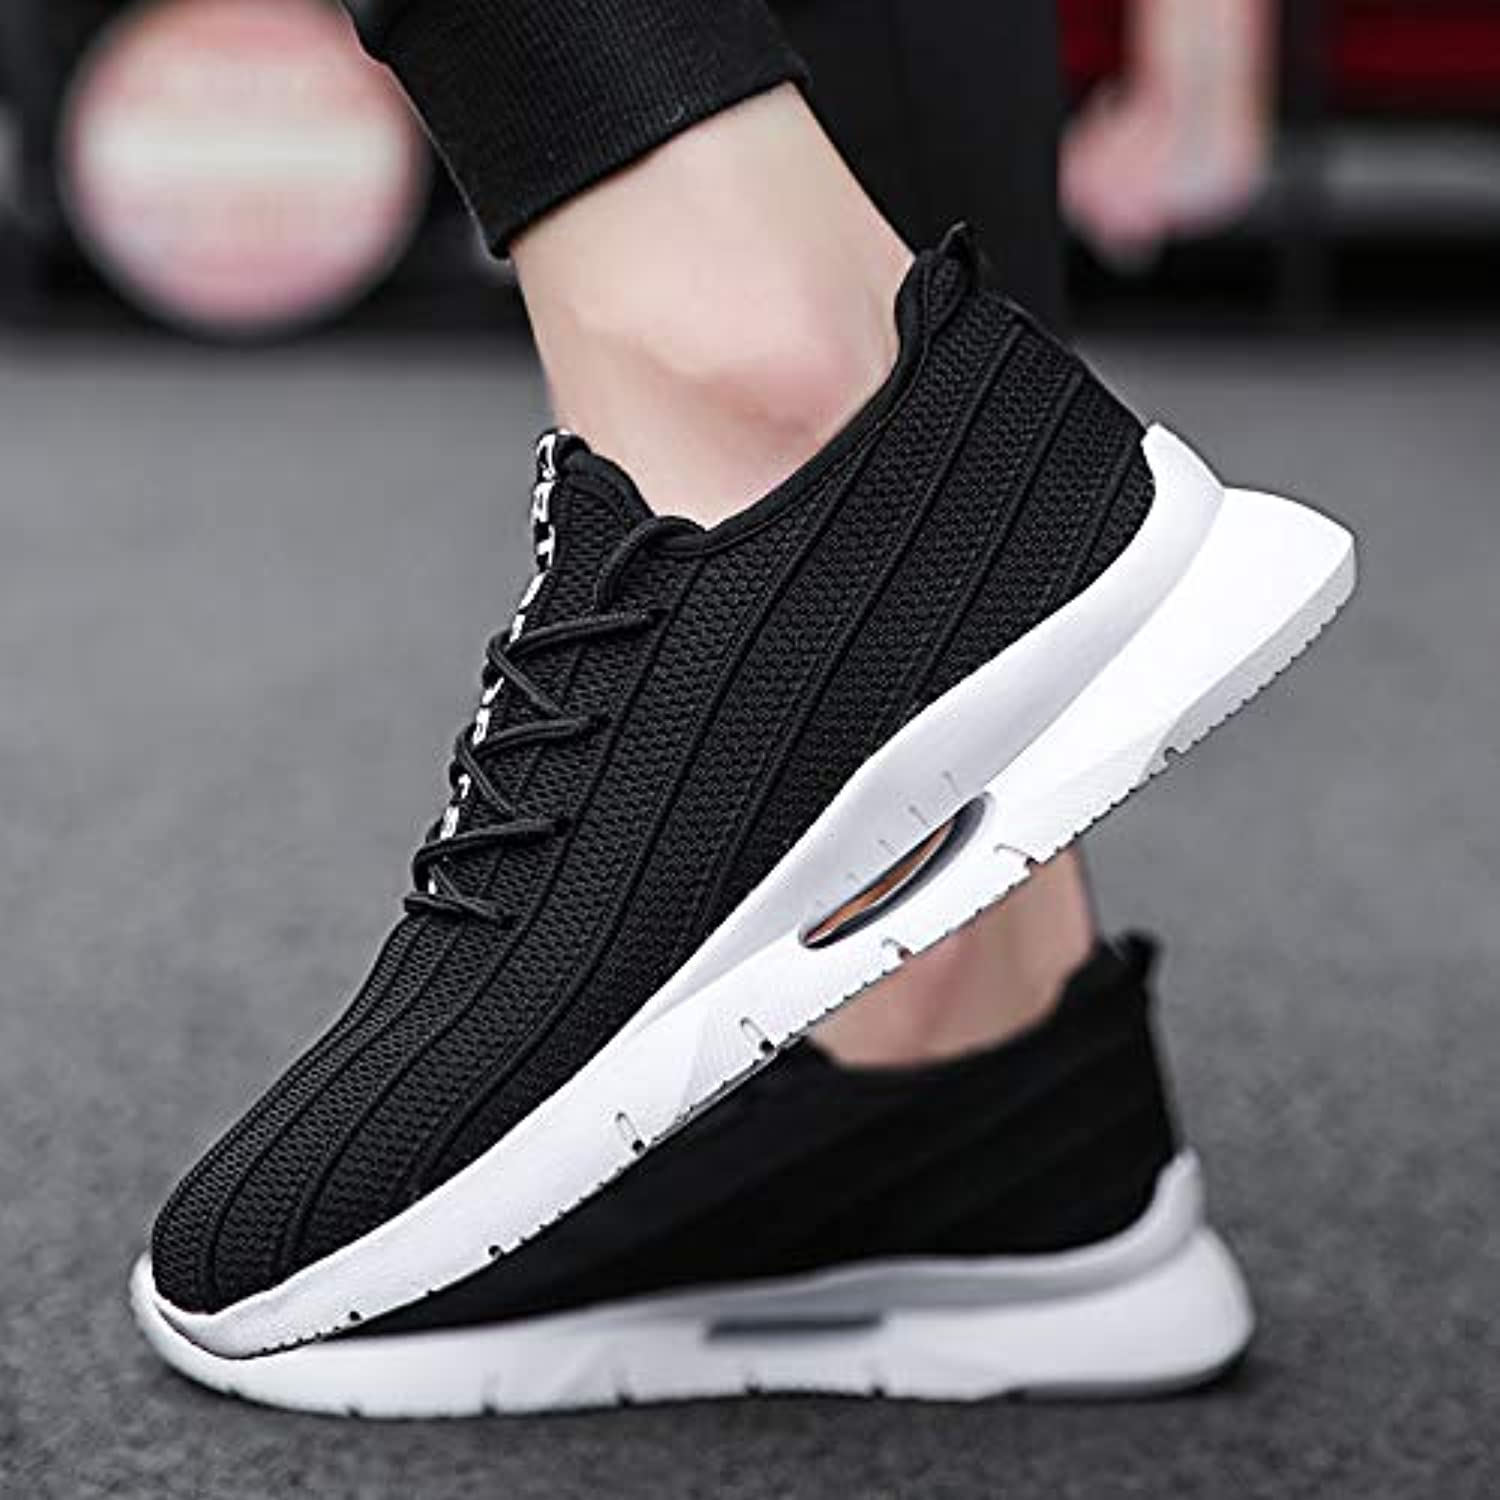 LOVDRAM Men'S shoes Men'S Large Size Men'S Comfortable Flying Woven Shock Absorption Casual Fashion Sports Running shoes 40-46